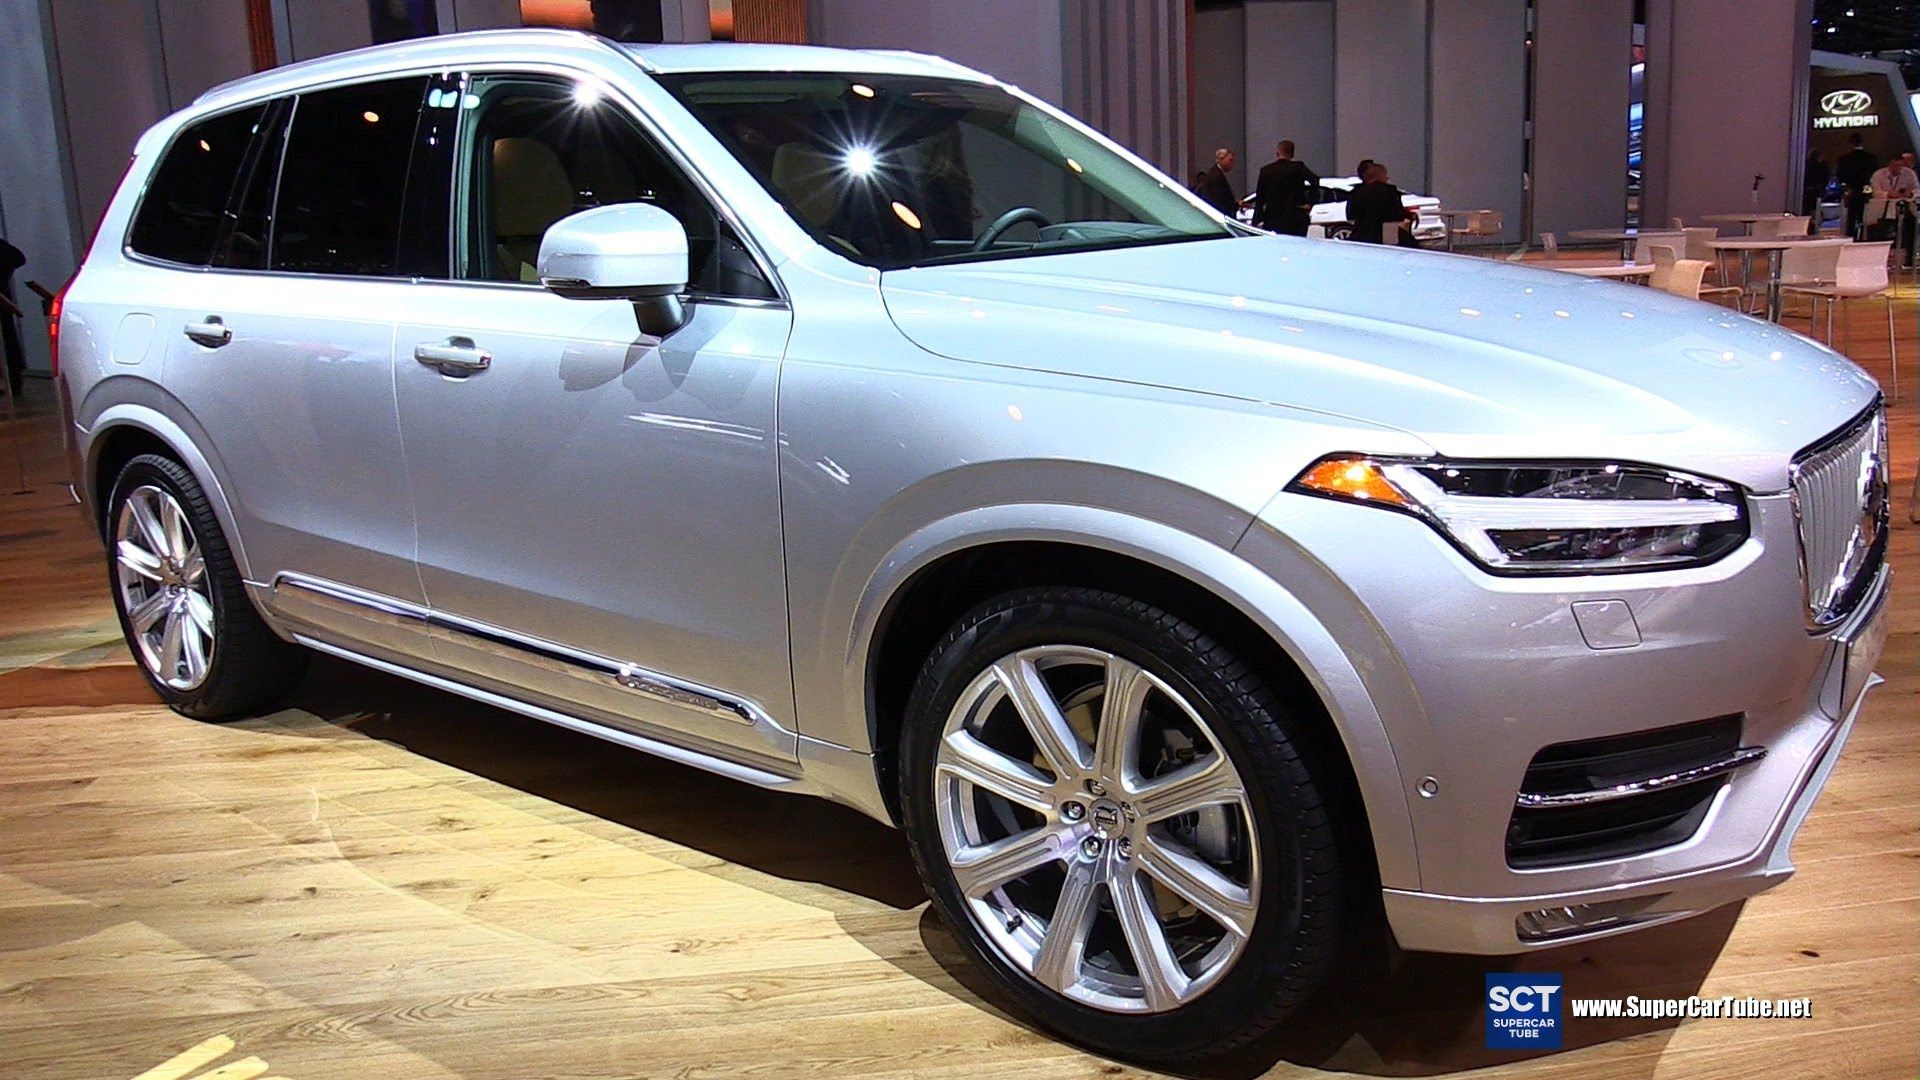 2016 Volvo Xc90 T6 Luxury Suv Exterior And Interior Walkaround